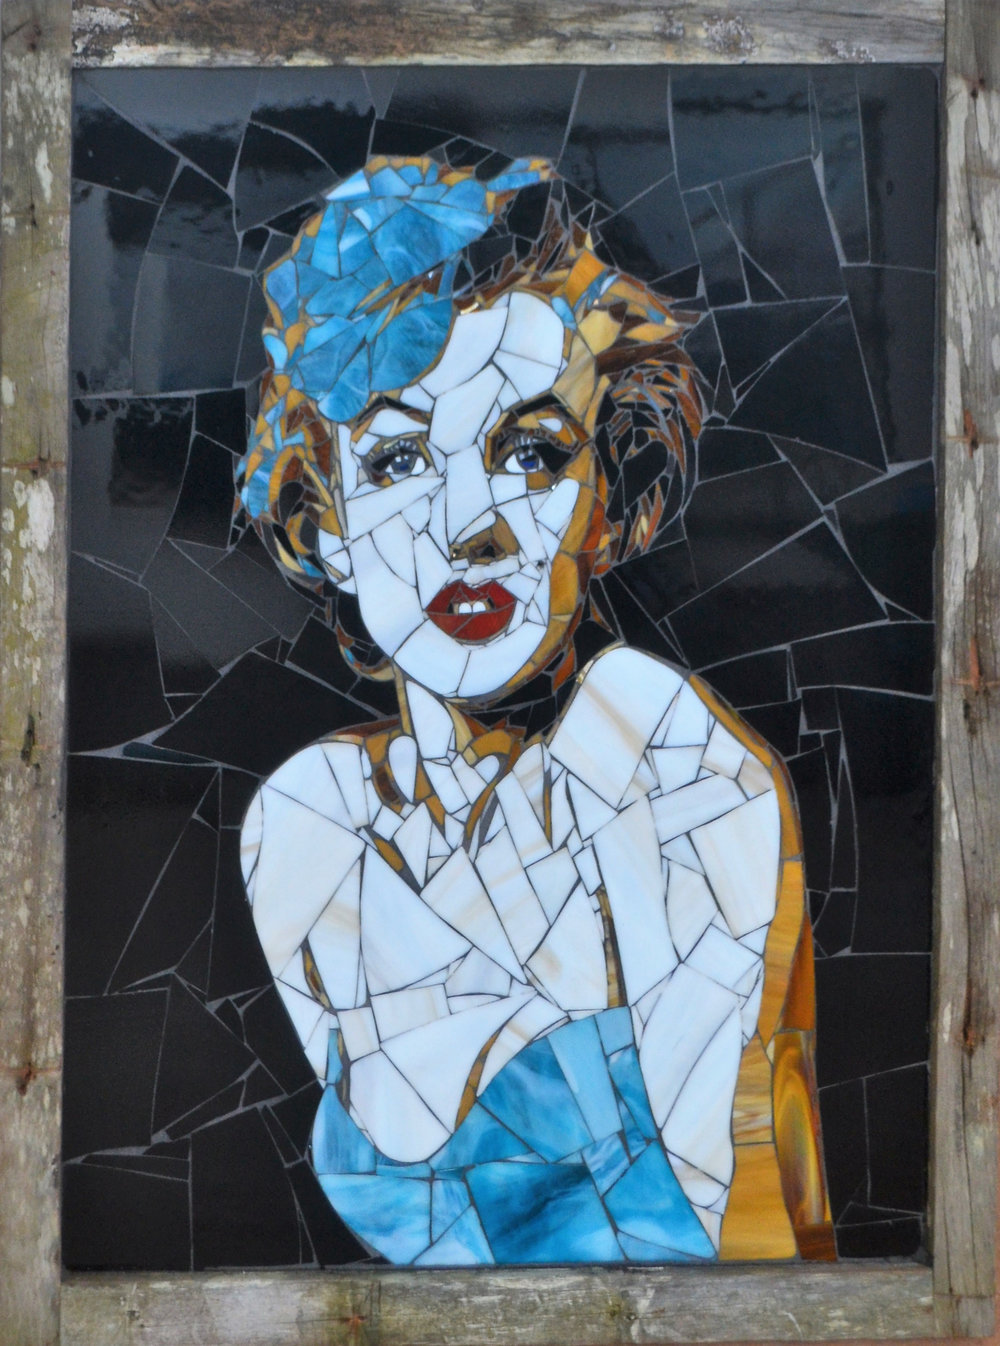 Marilyn  Danielle Fernandez, pop-art stained glass mosaic, framed in native totara, 910mm x 680mm  $5,900.00